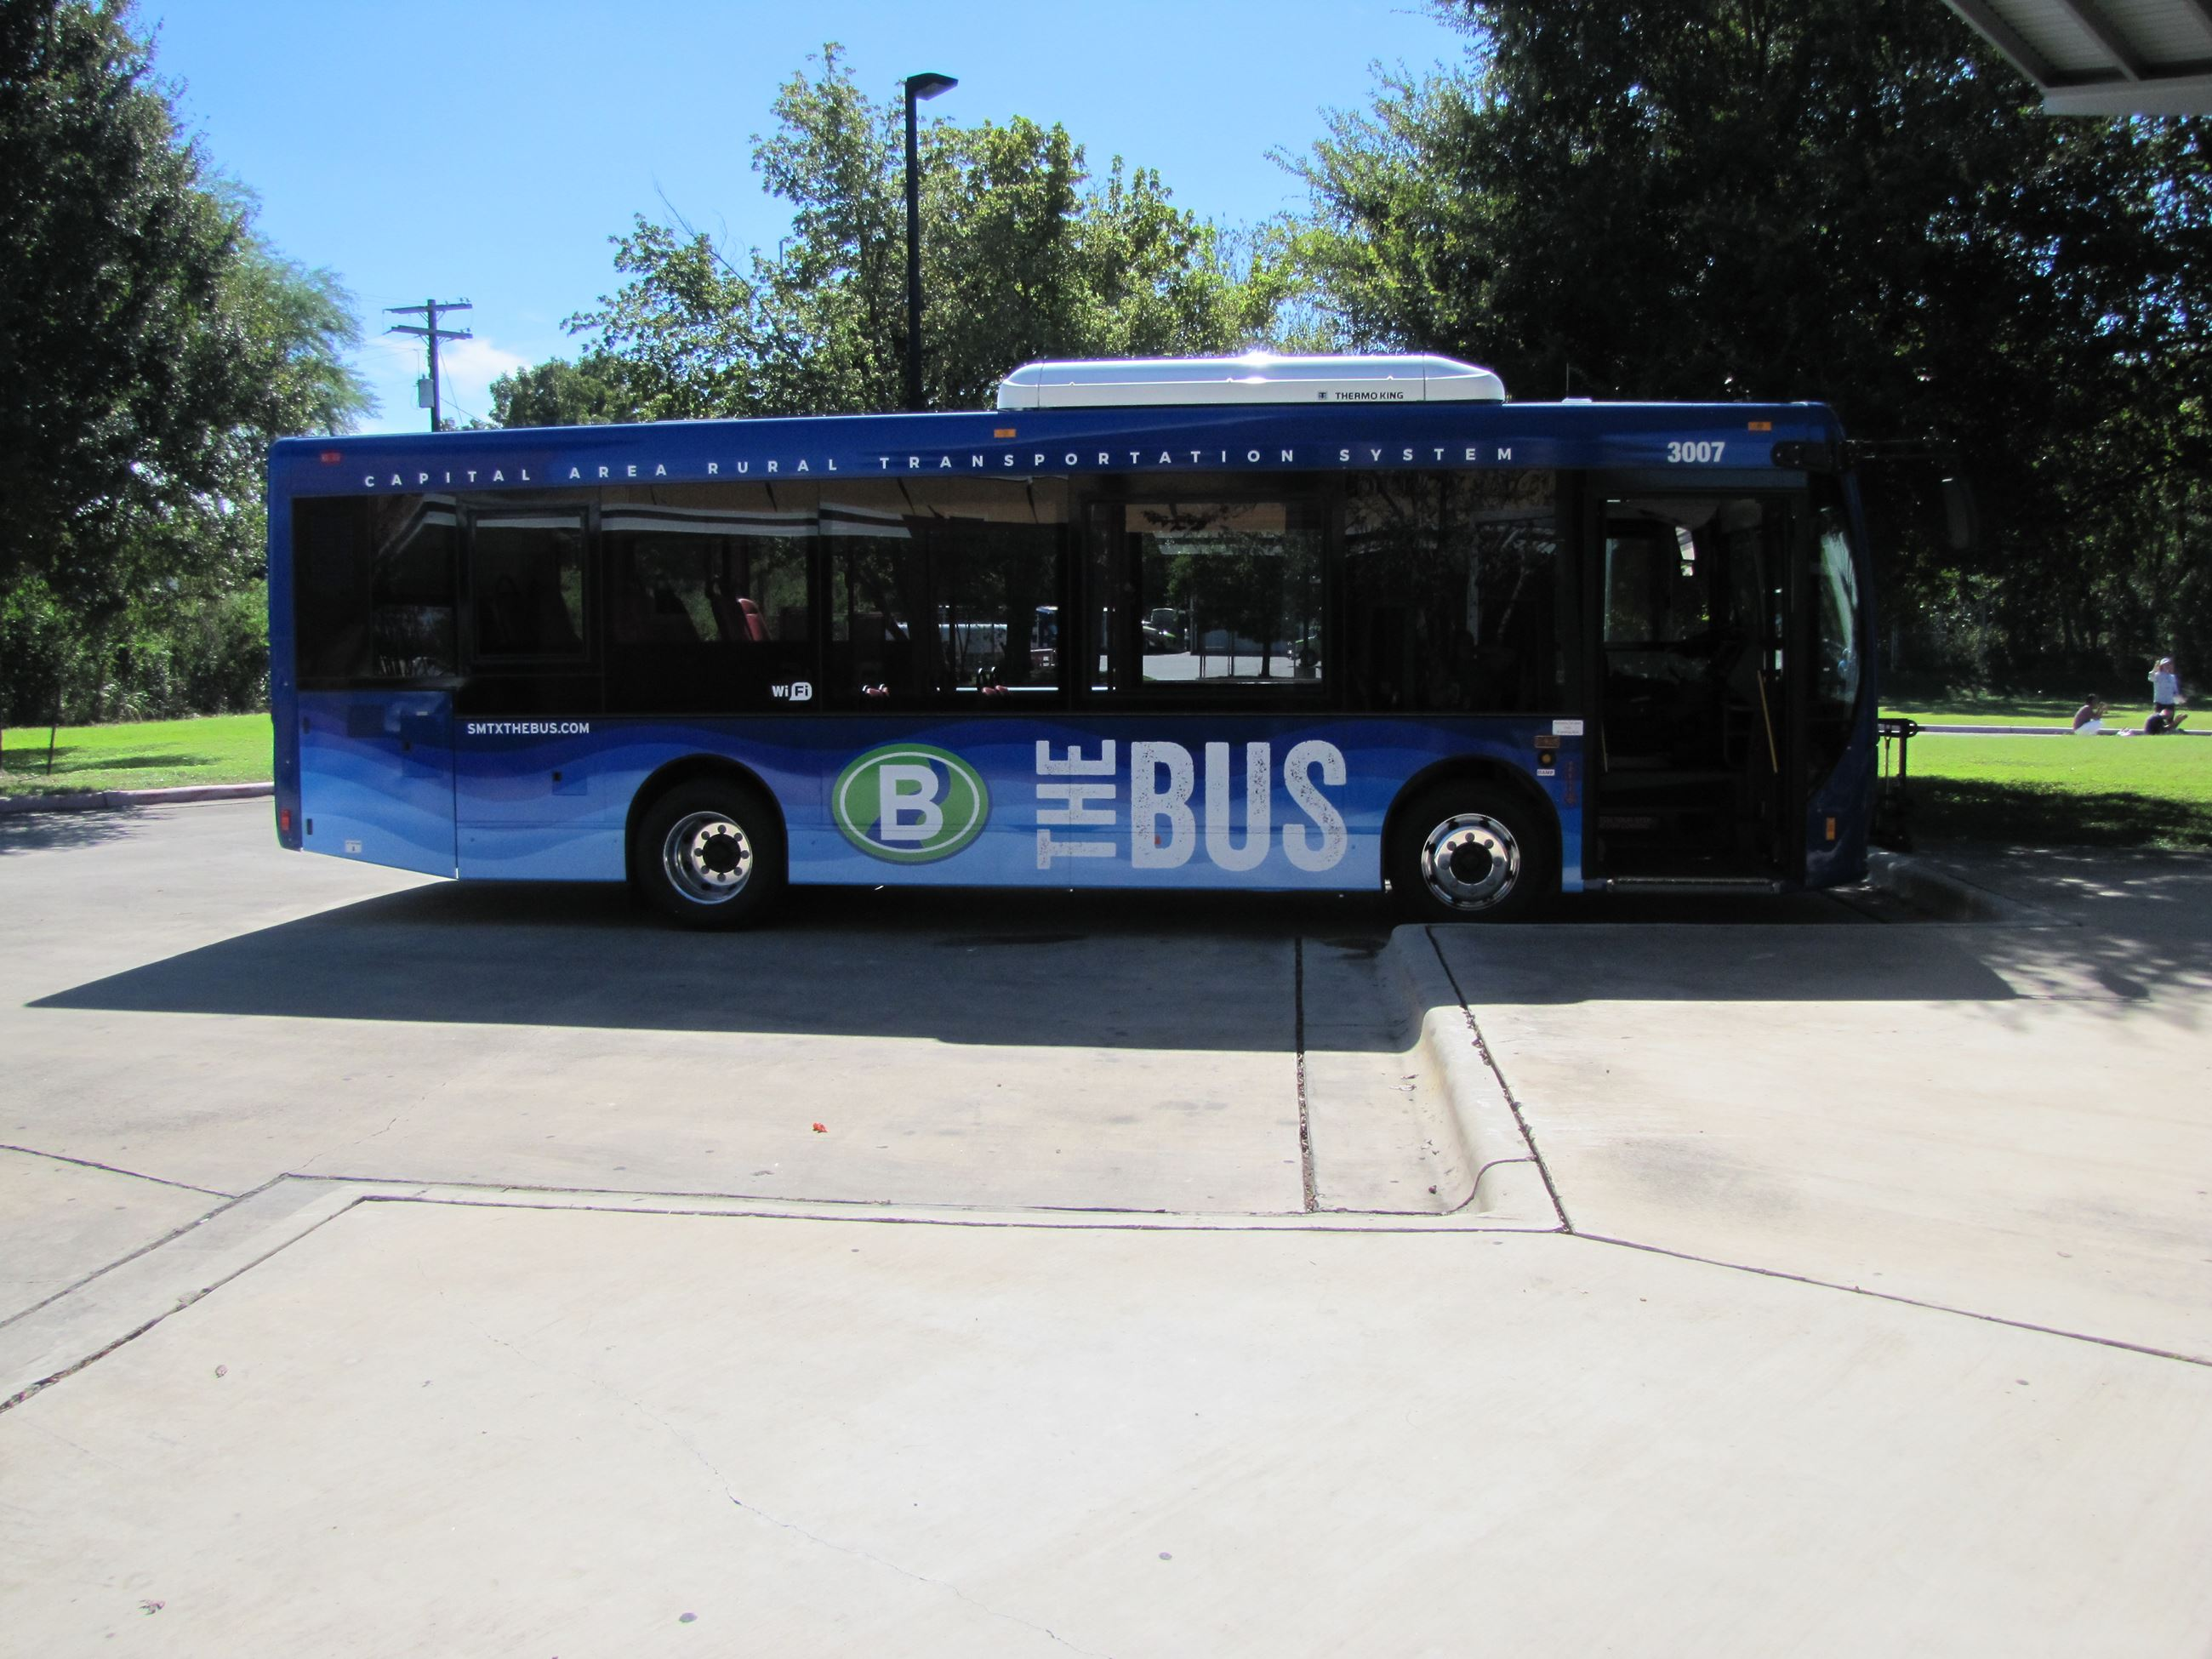 A blue city bus is parked in a parking lot.